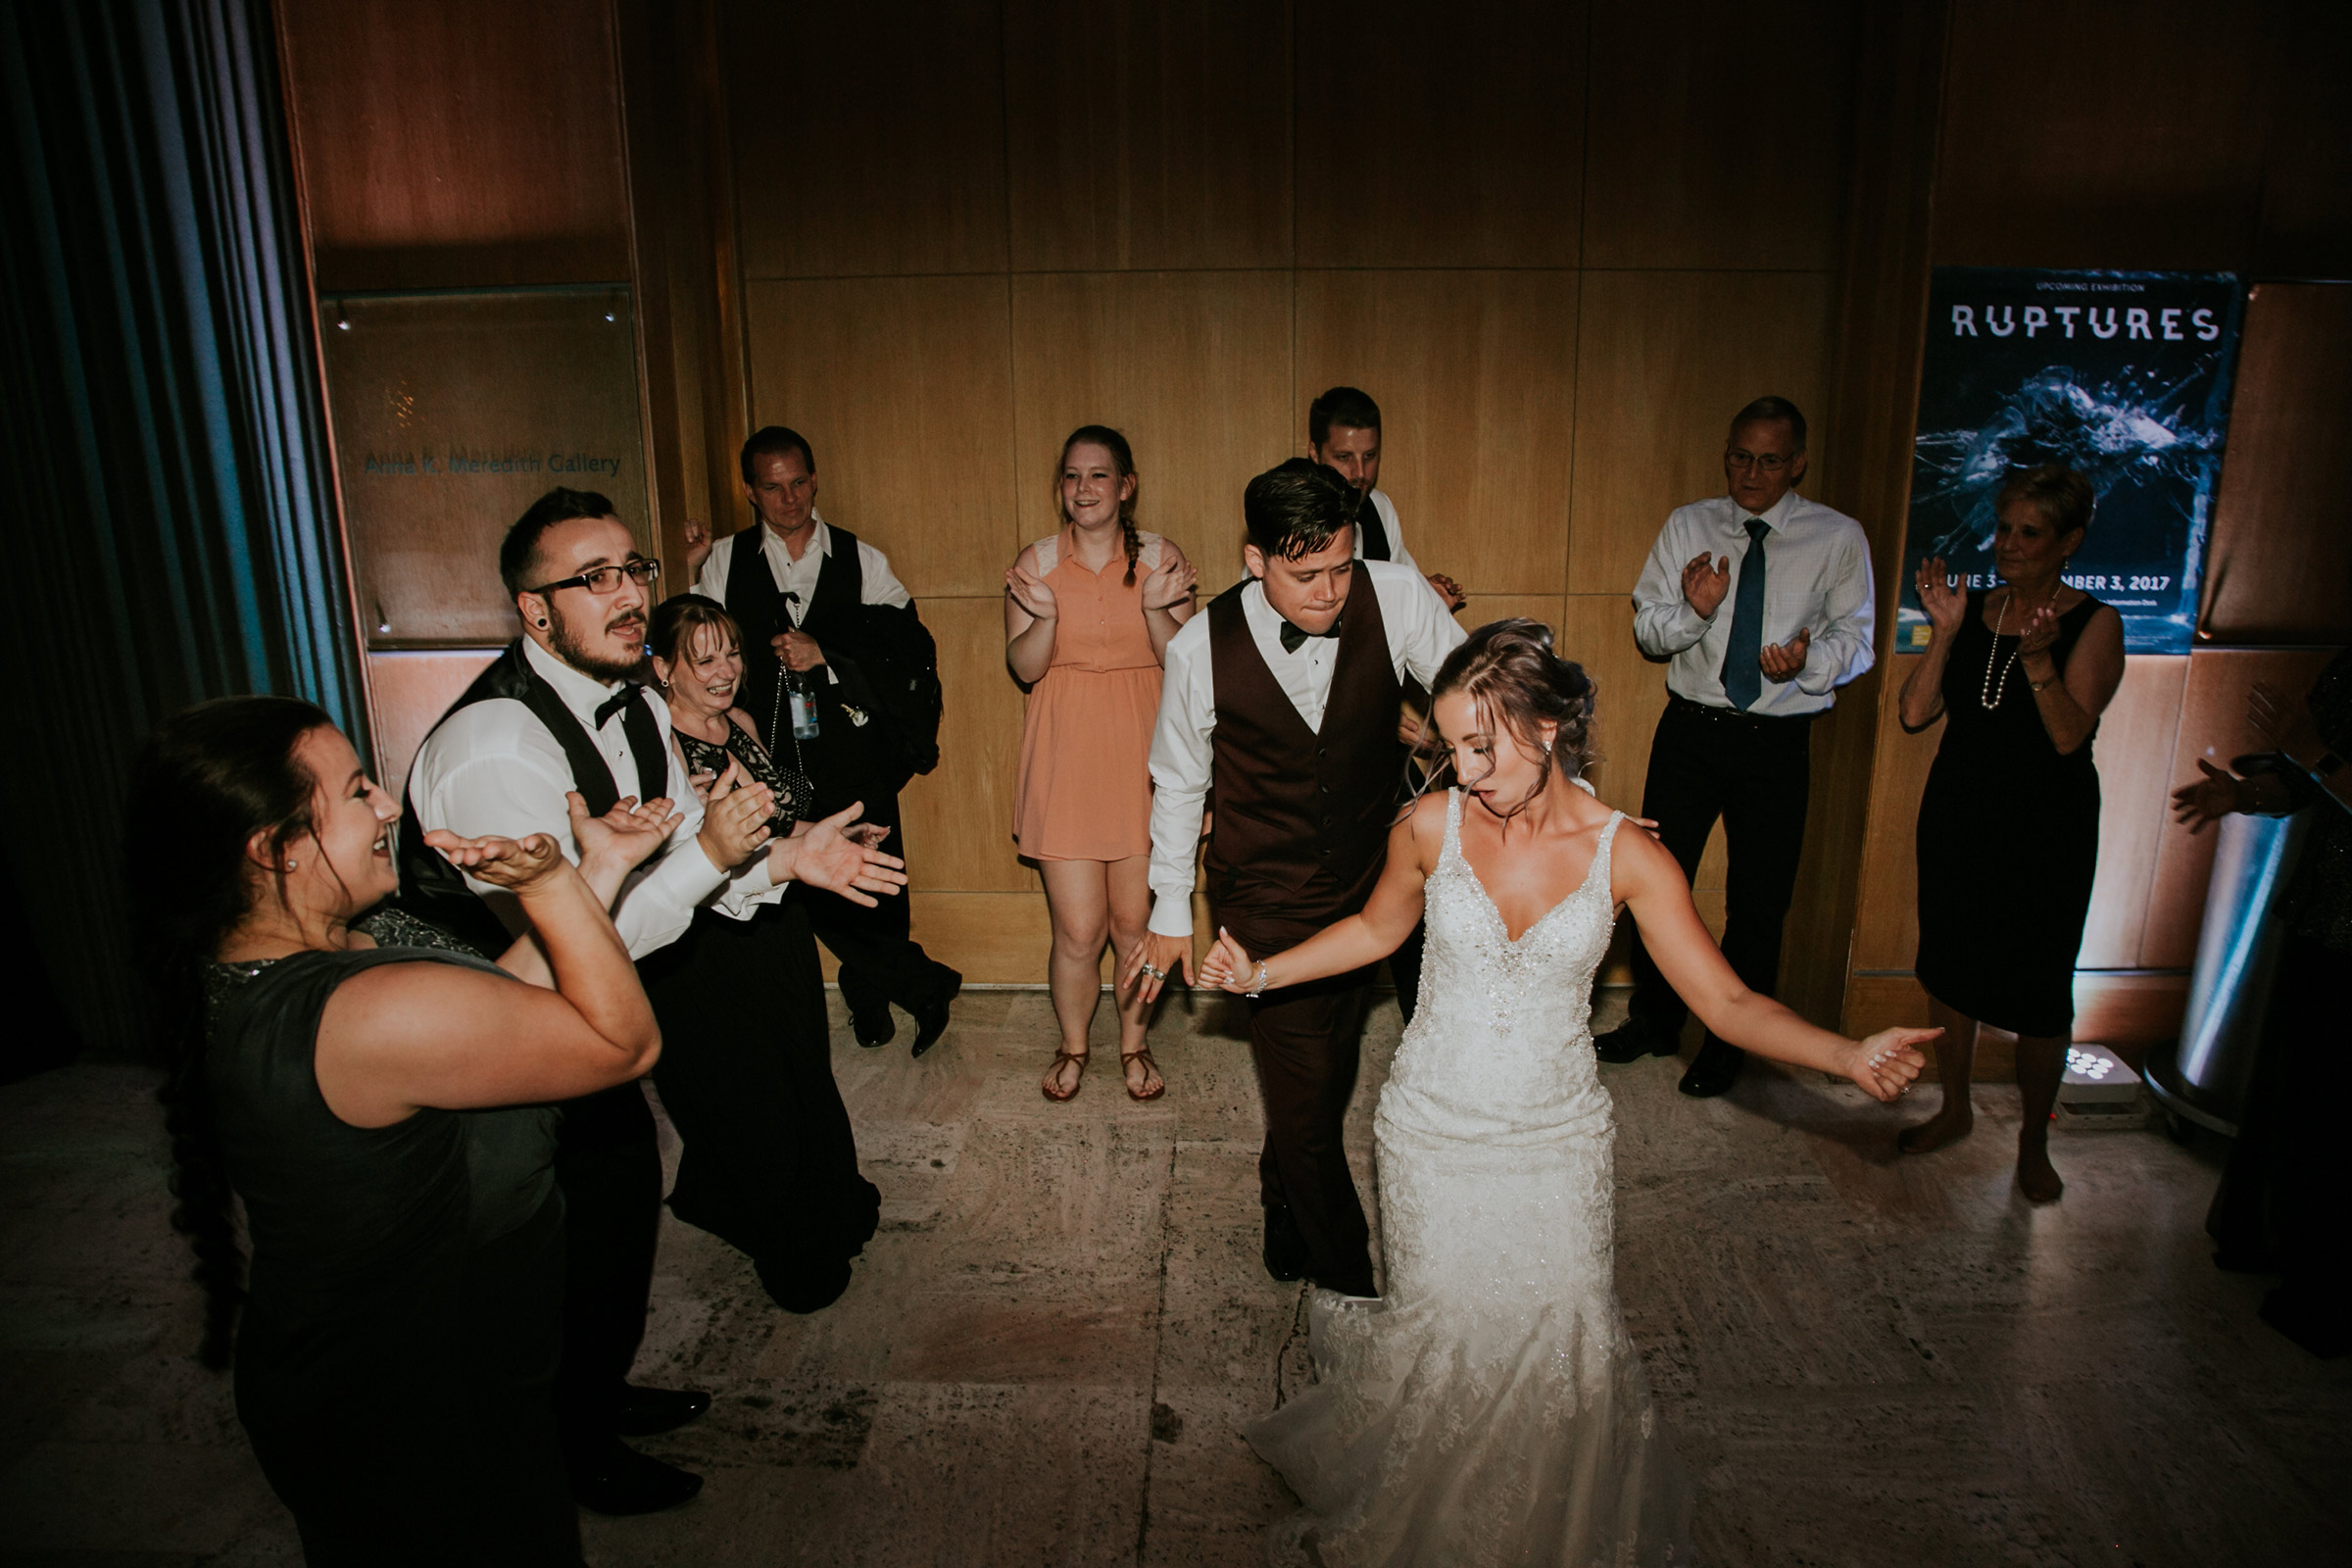 wedding-couple-dancing-with-people-surrounding-them-desmoines-iowa-art-center-raelyn-ramey-photography.jpg